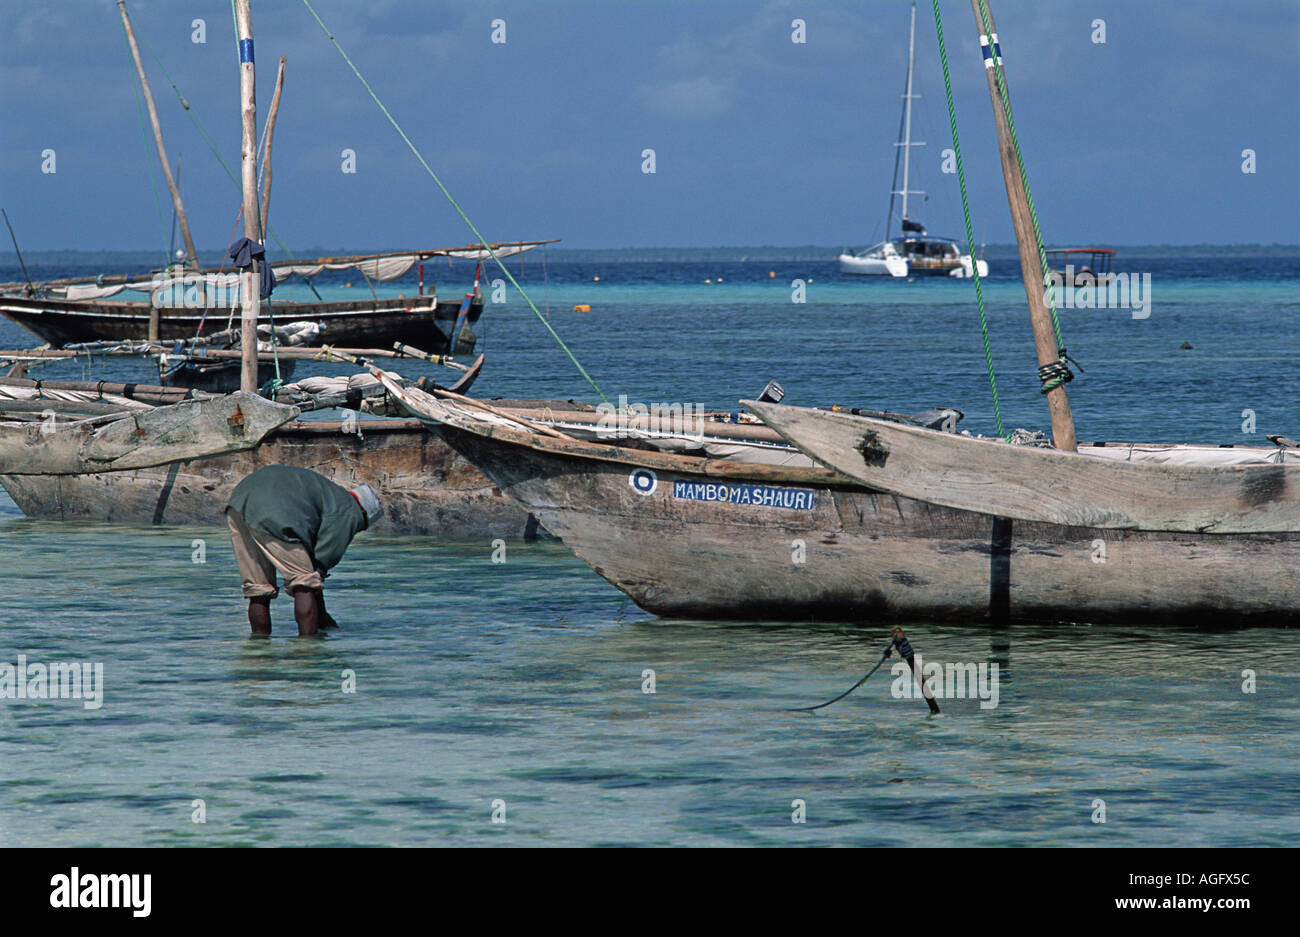 Fisherman in the shallows at low tide beside anchored boats Nungwe Unguja Zanzibar Tanzania East Africa - Stock Image